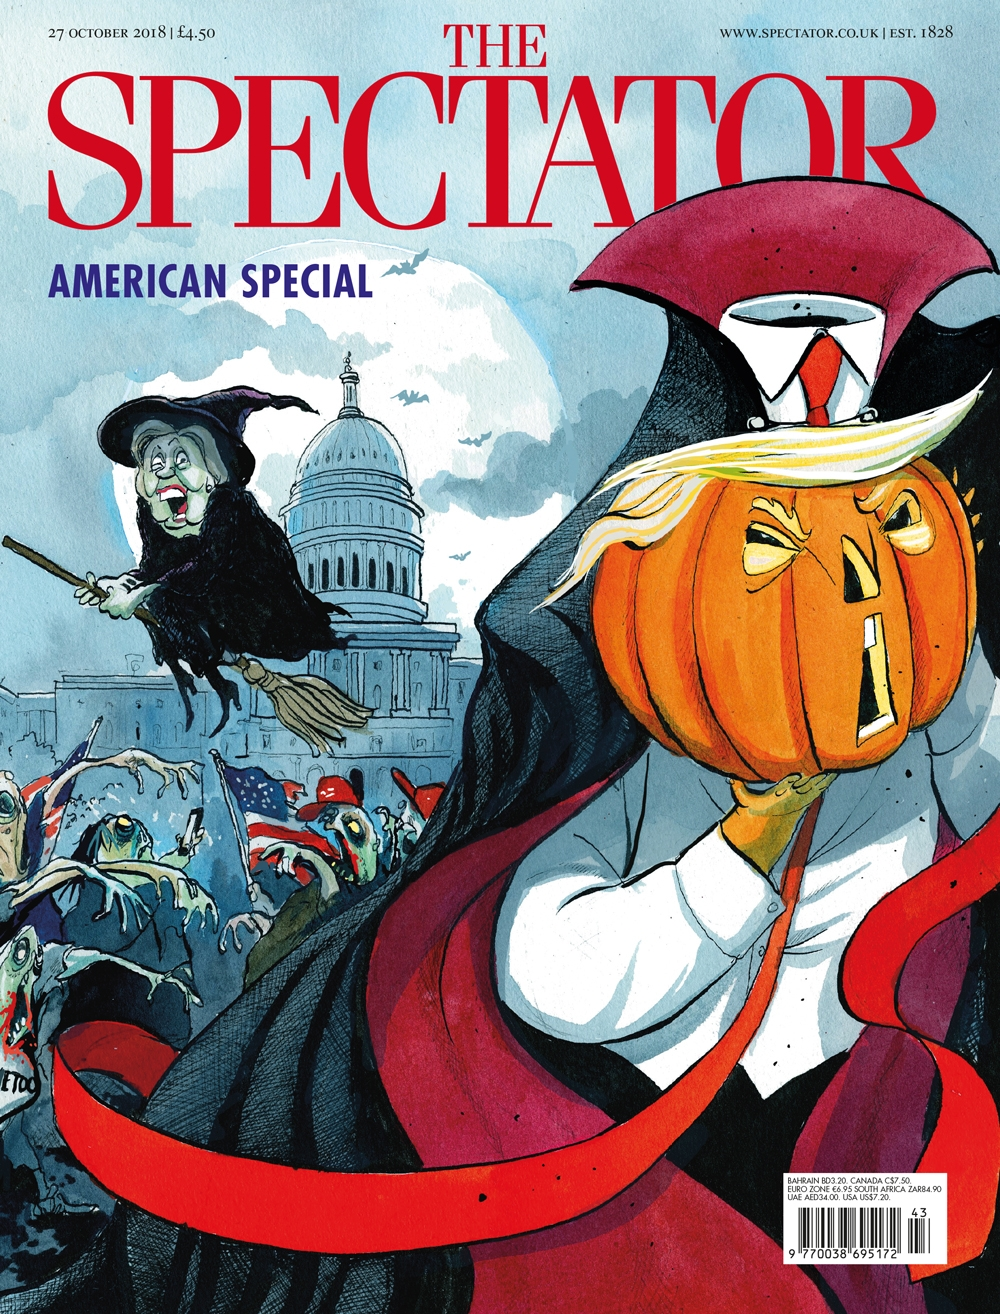 Issue 27 October 2018 The Spectator